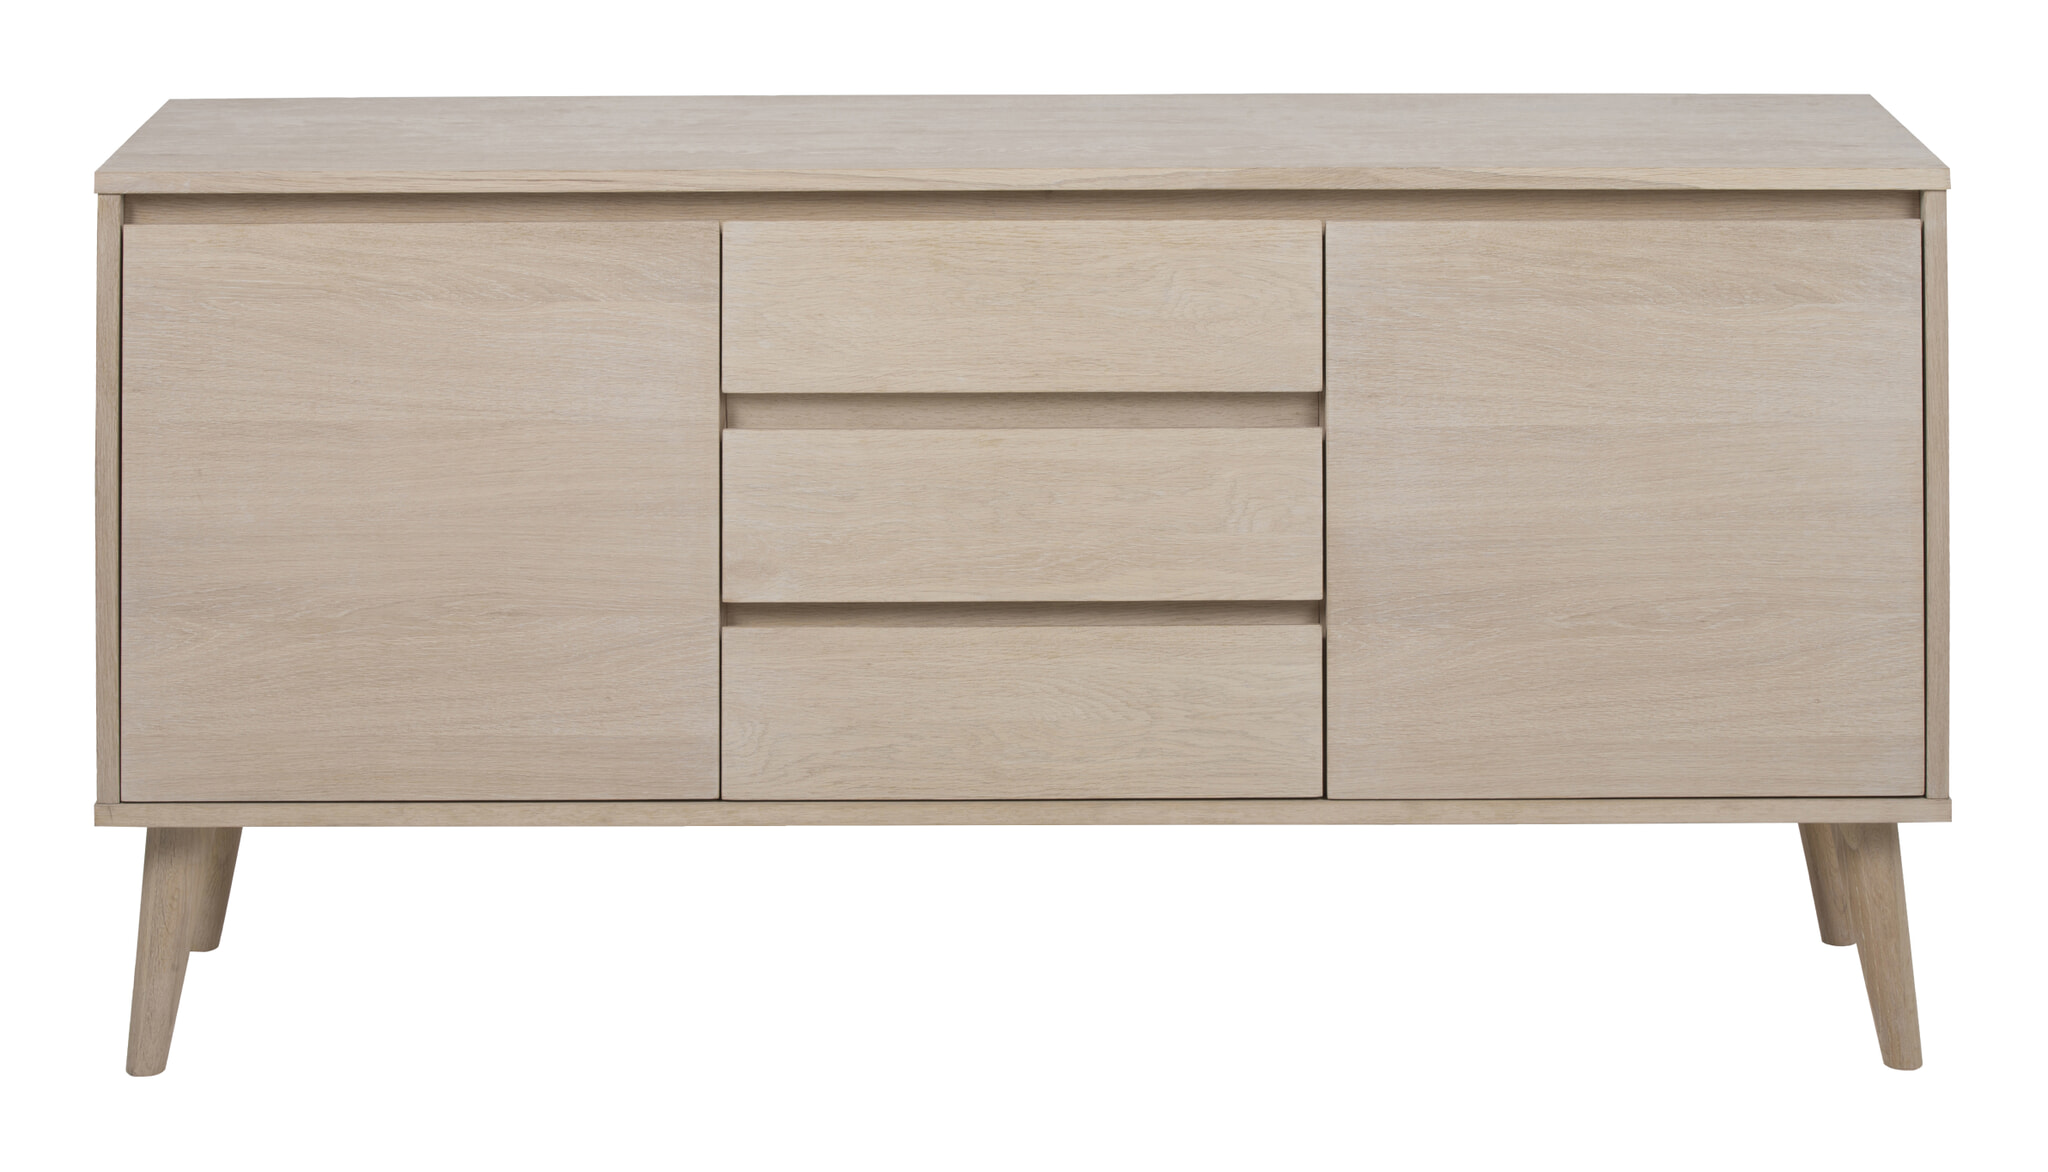 Sidetable Eiken White Wash.Bendt Dressoir Ebbe 150cm Kleur Eiken Whitewash